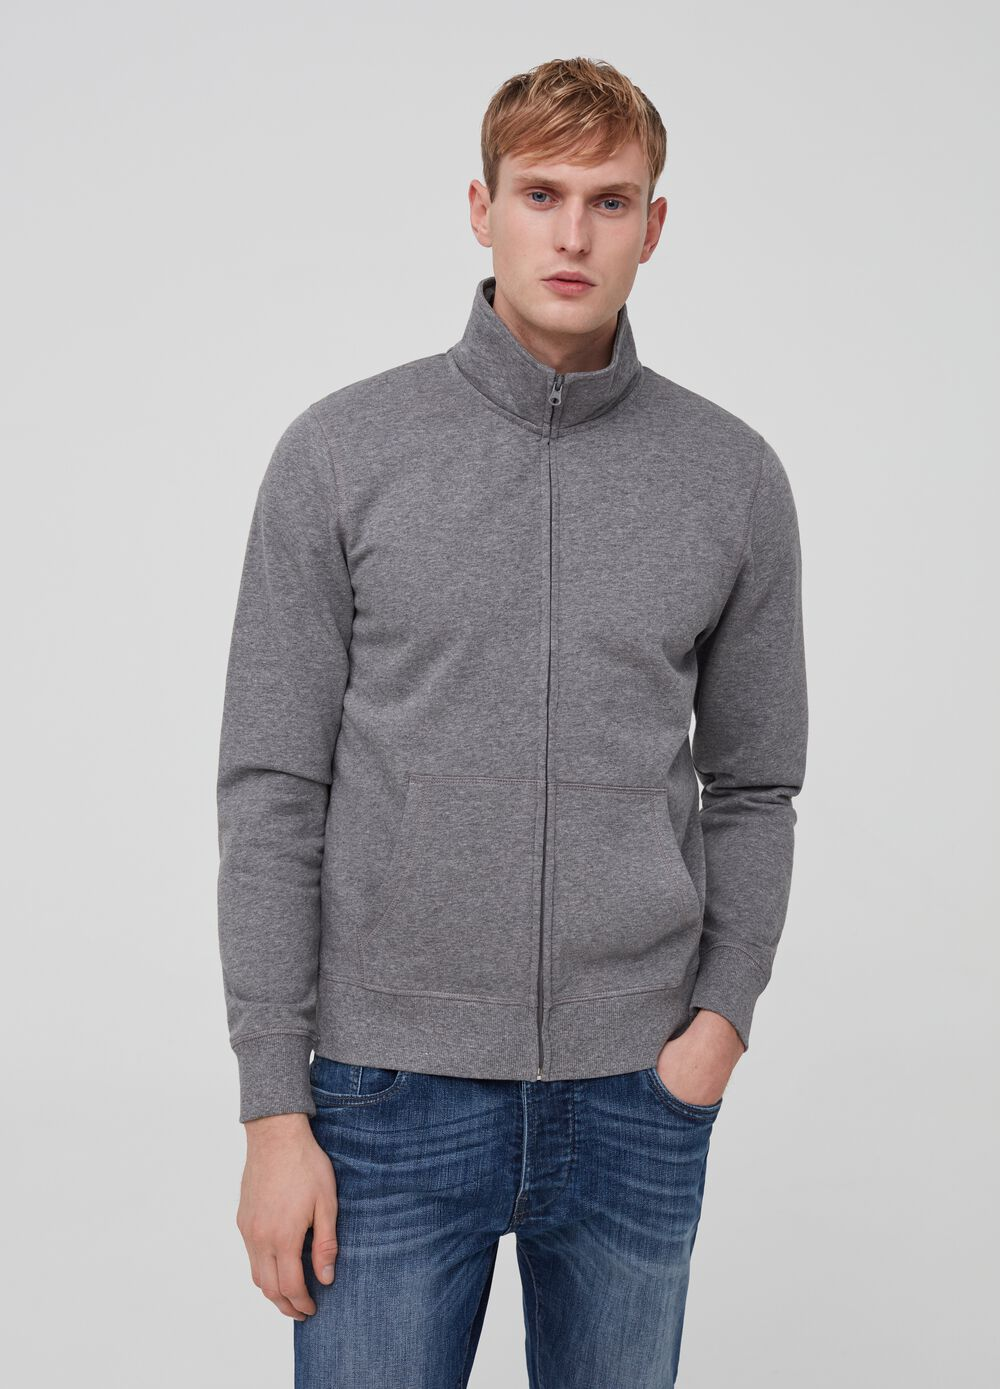 Cotton and viscose sweatshirt with high neck